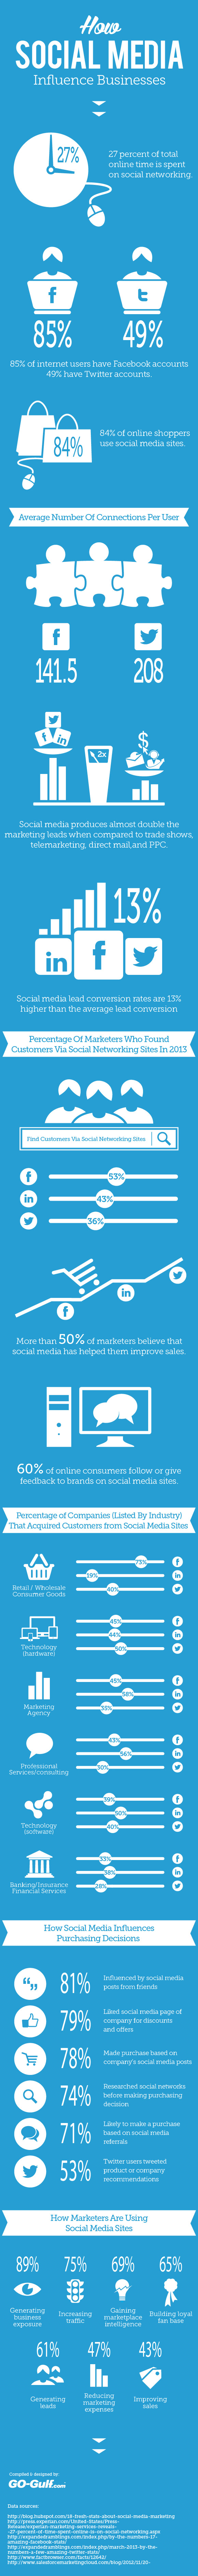 how-social-media-influence-businesses-infographic_51dbd2db20a64